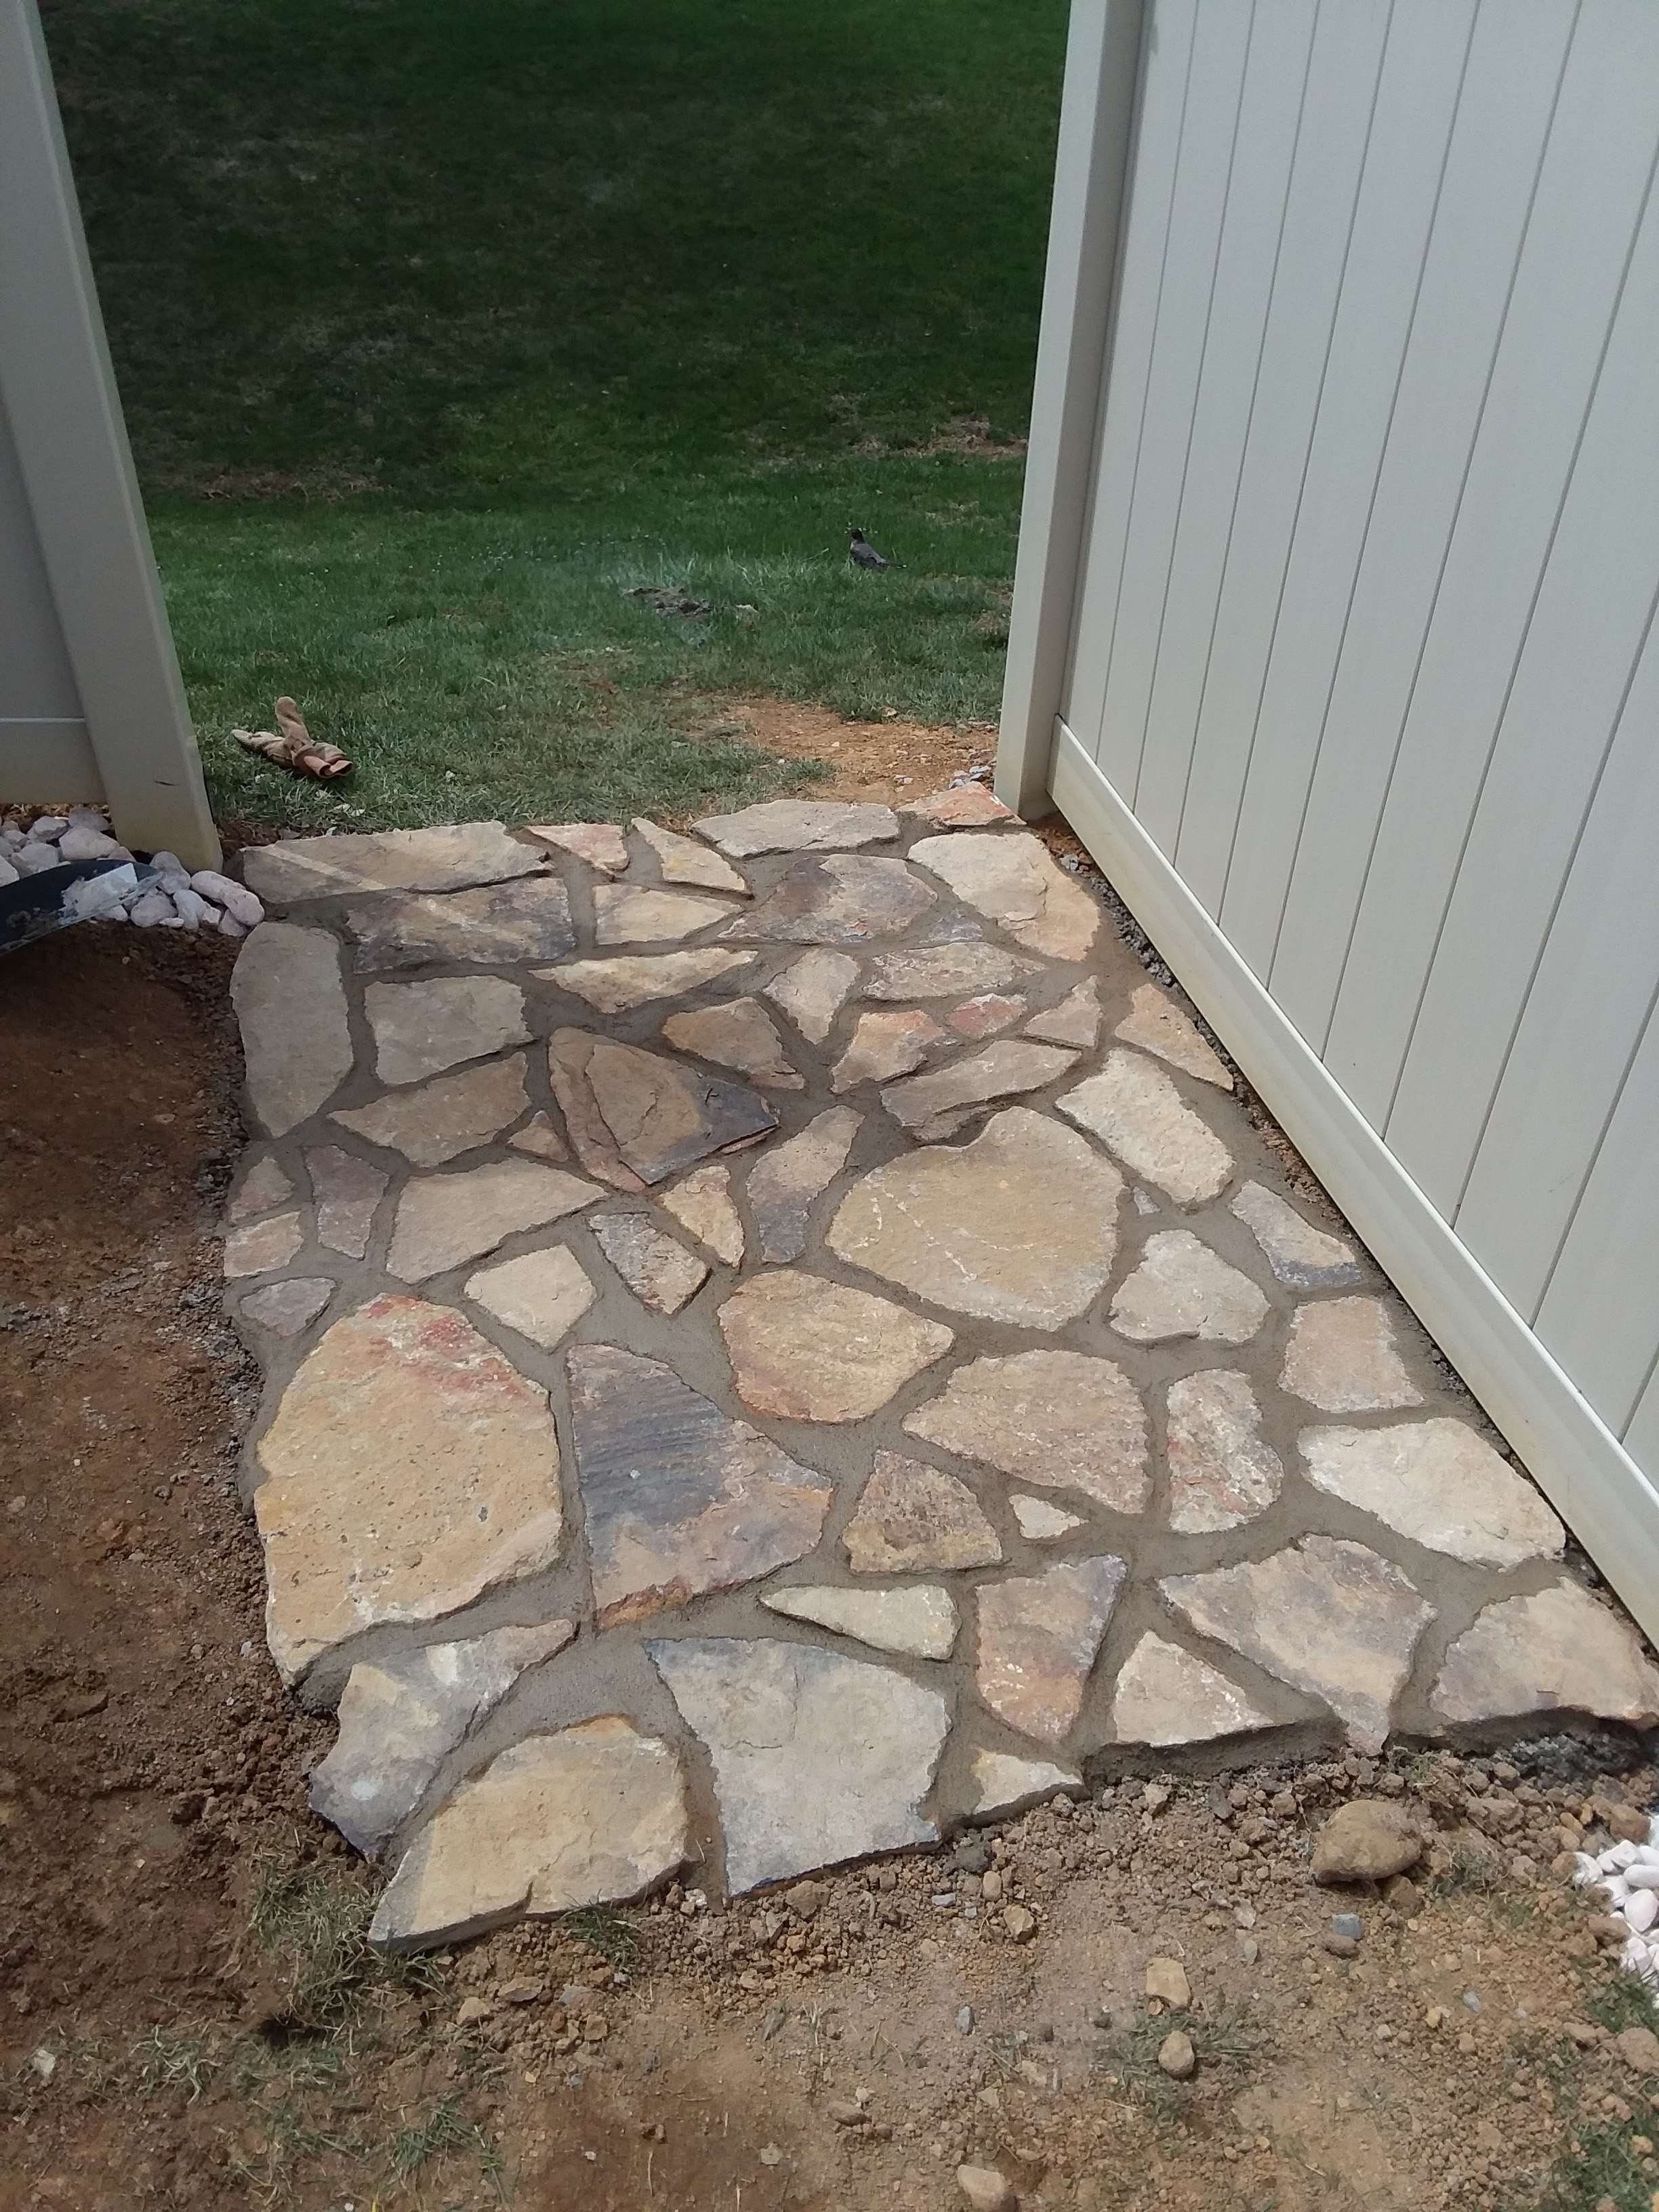 paver patio king of prussia, hardscaping king of prussia pa, hardscaping wyomissing pa, hardscaping allentown pa, landscaping king of prussia pa, landscaping wyomissing pa, landscaping allentown pa, landscaping near me, hardscaping near me, hardscape designer near me, hardscape designer king of prussia pa, hardscape desginer wyomissing pa, hardscape designer allentown pa, outdoor lighting king of prussia pa, outdoor lighting wyomissing pa, outdoor lighting allentown pa, outdoor lighting near me, paver patio near me, paver patio wyomissing pa, paver patio king of prussia pa, paver patio allentown pa